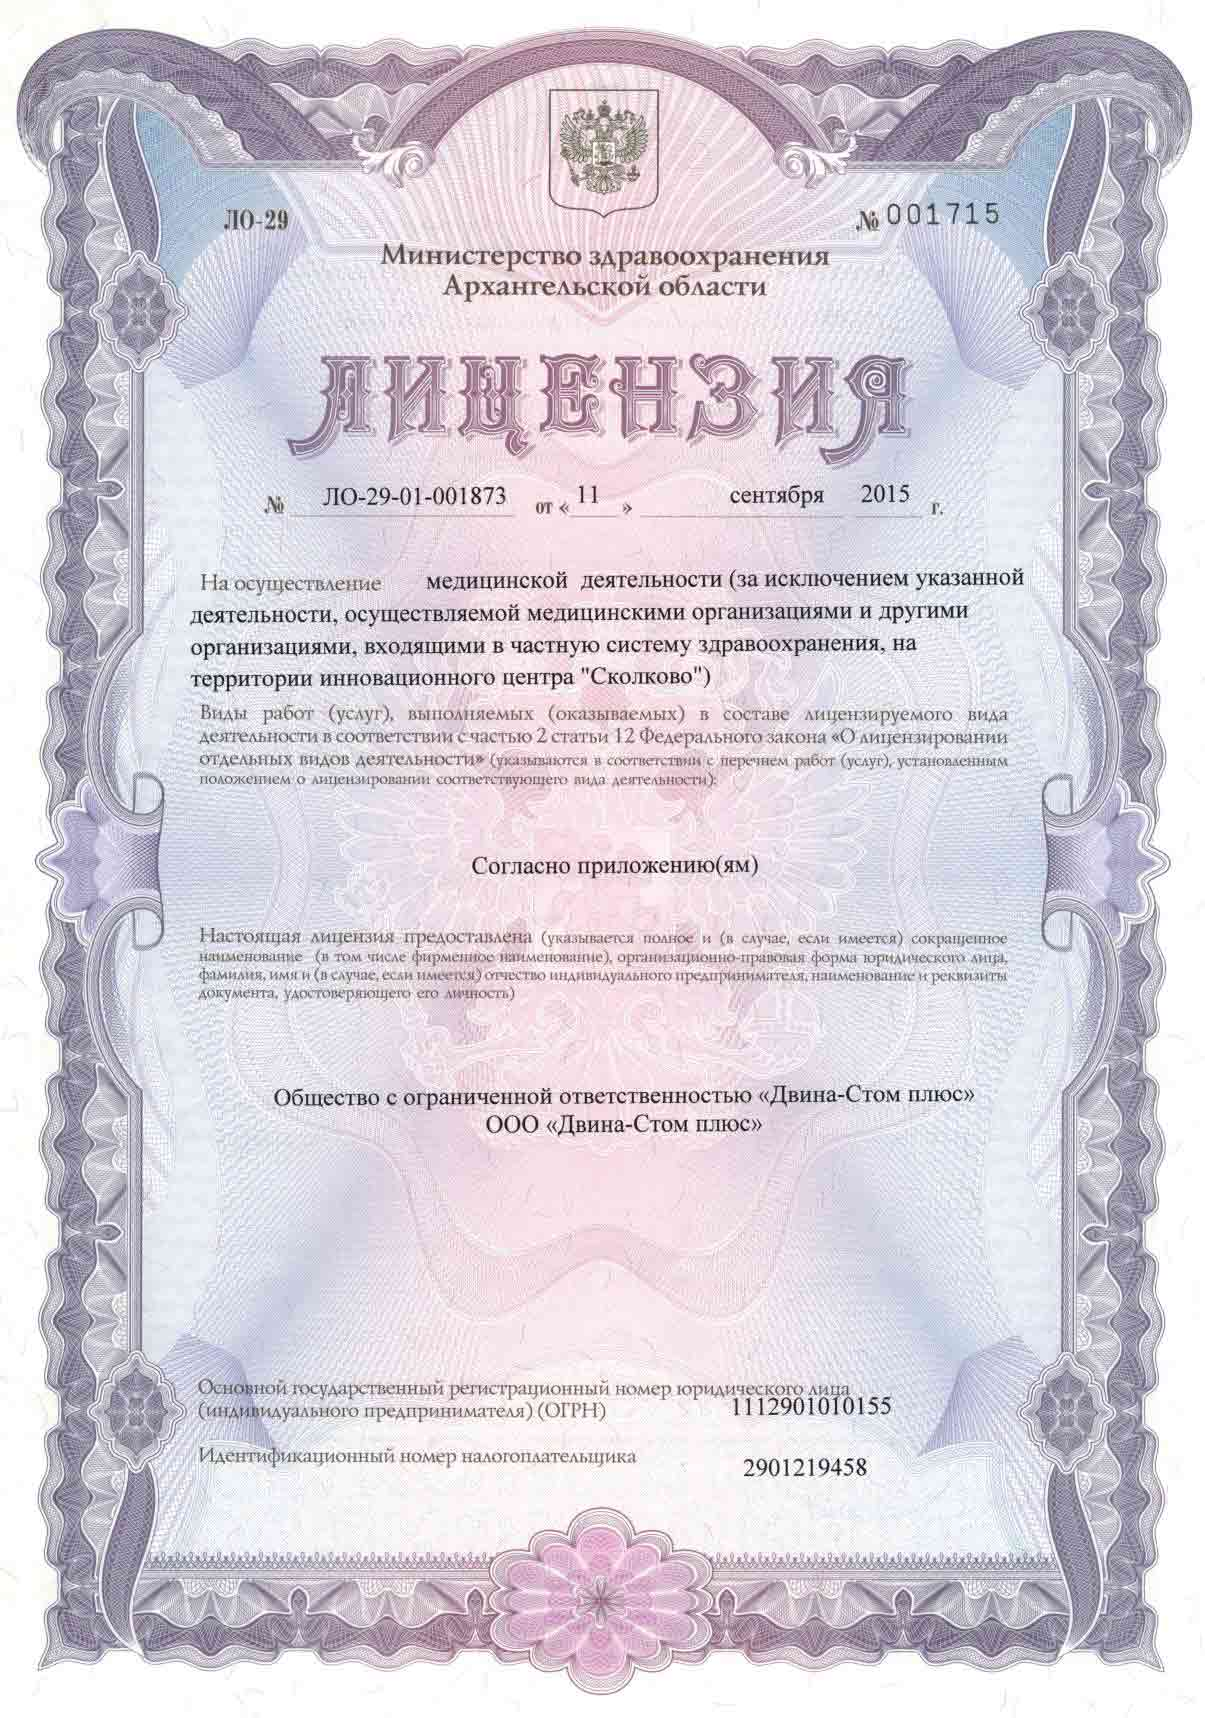 NewLicense-page-001.jpg